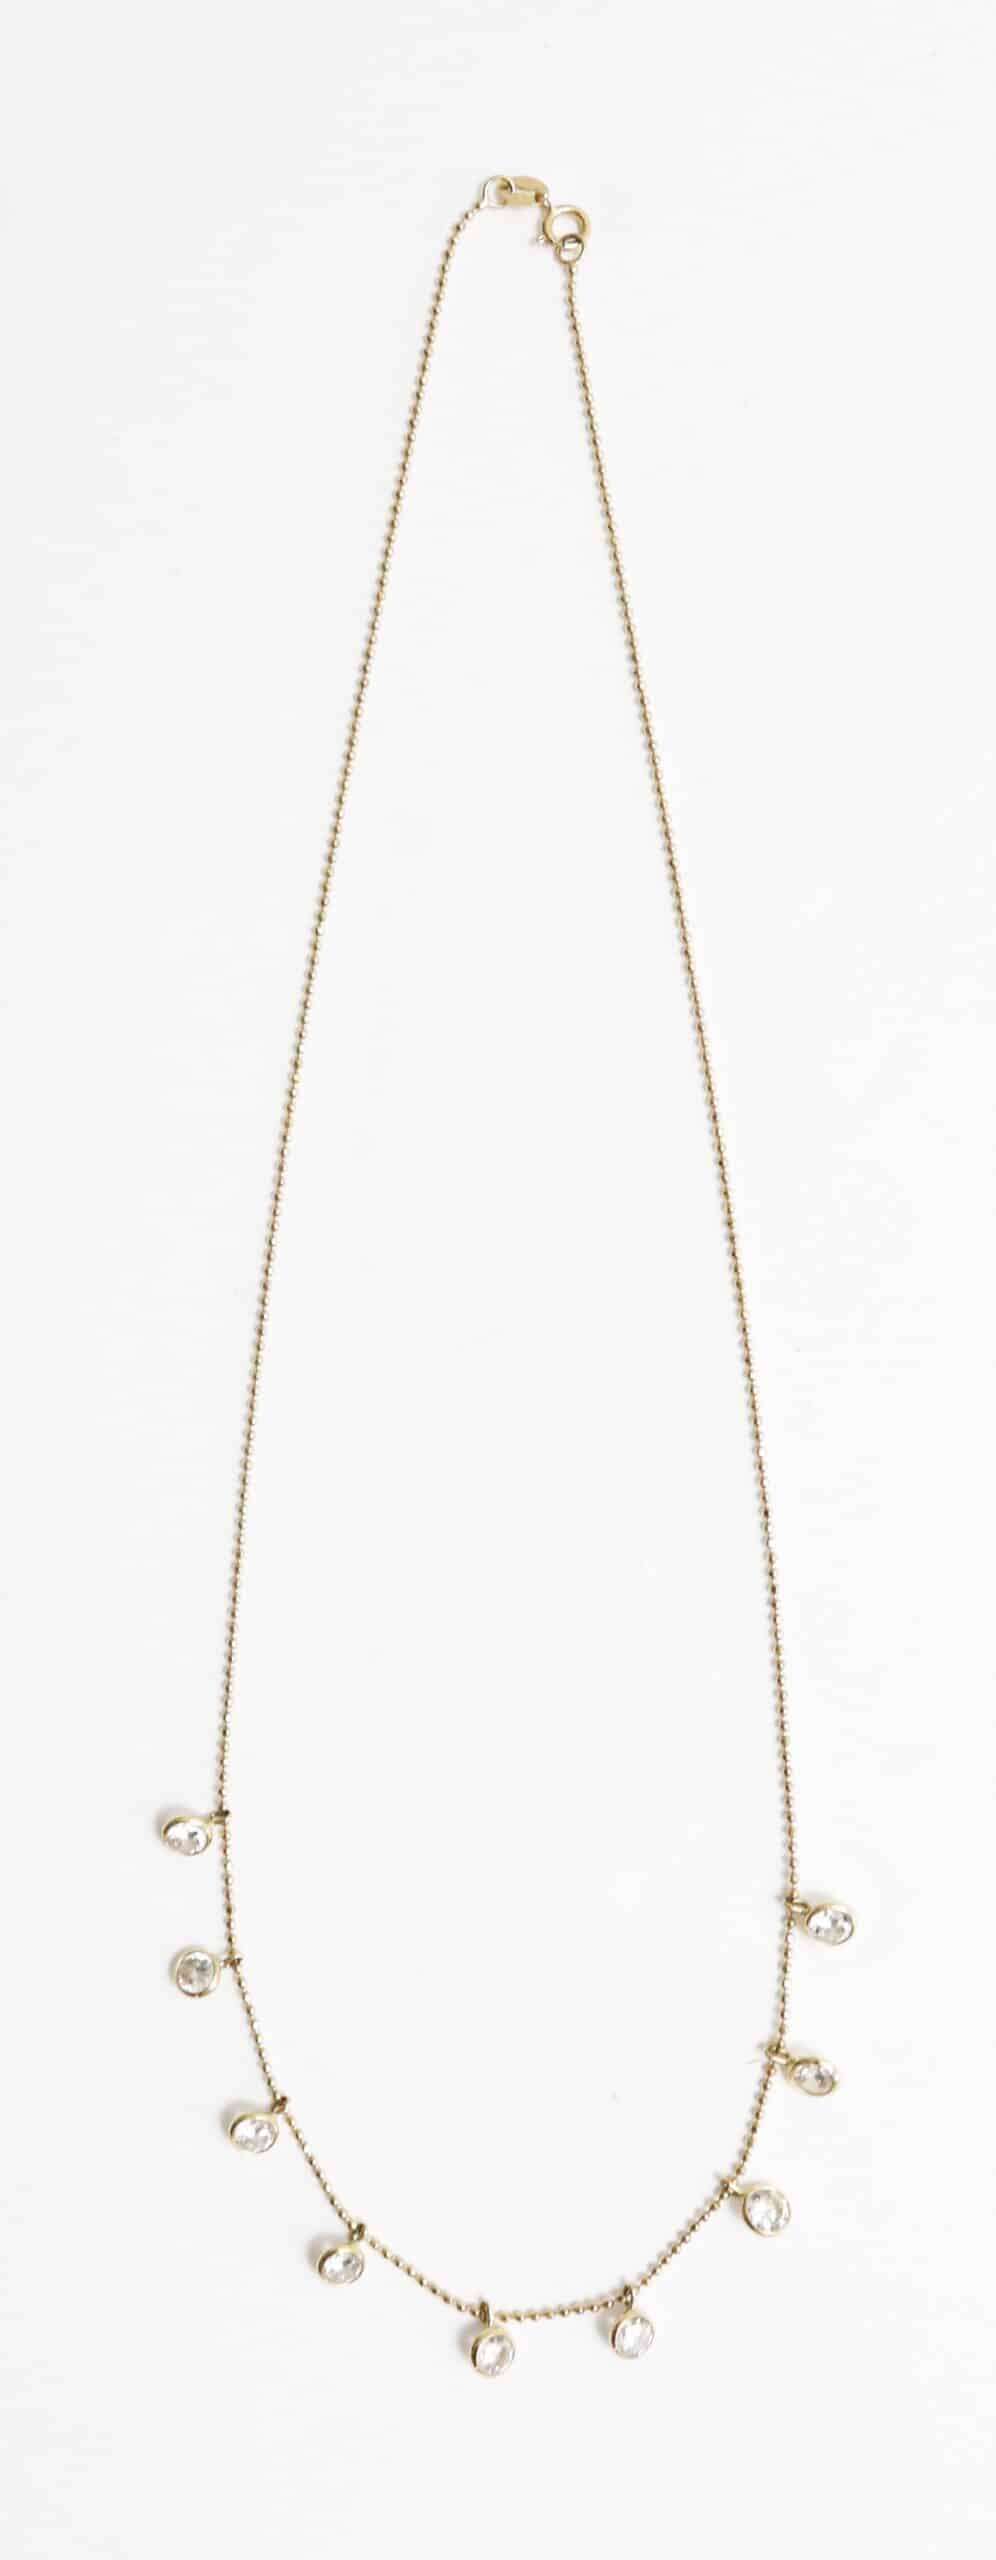 by sophia lee necklace